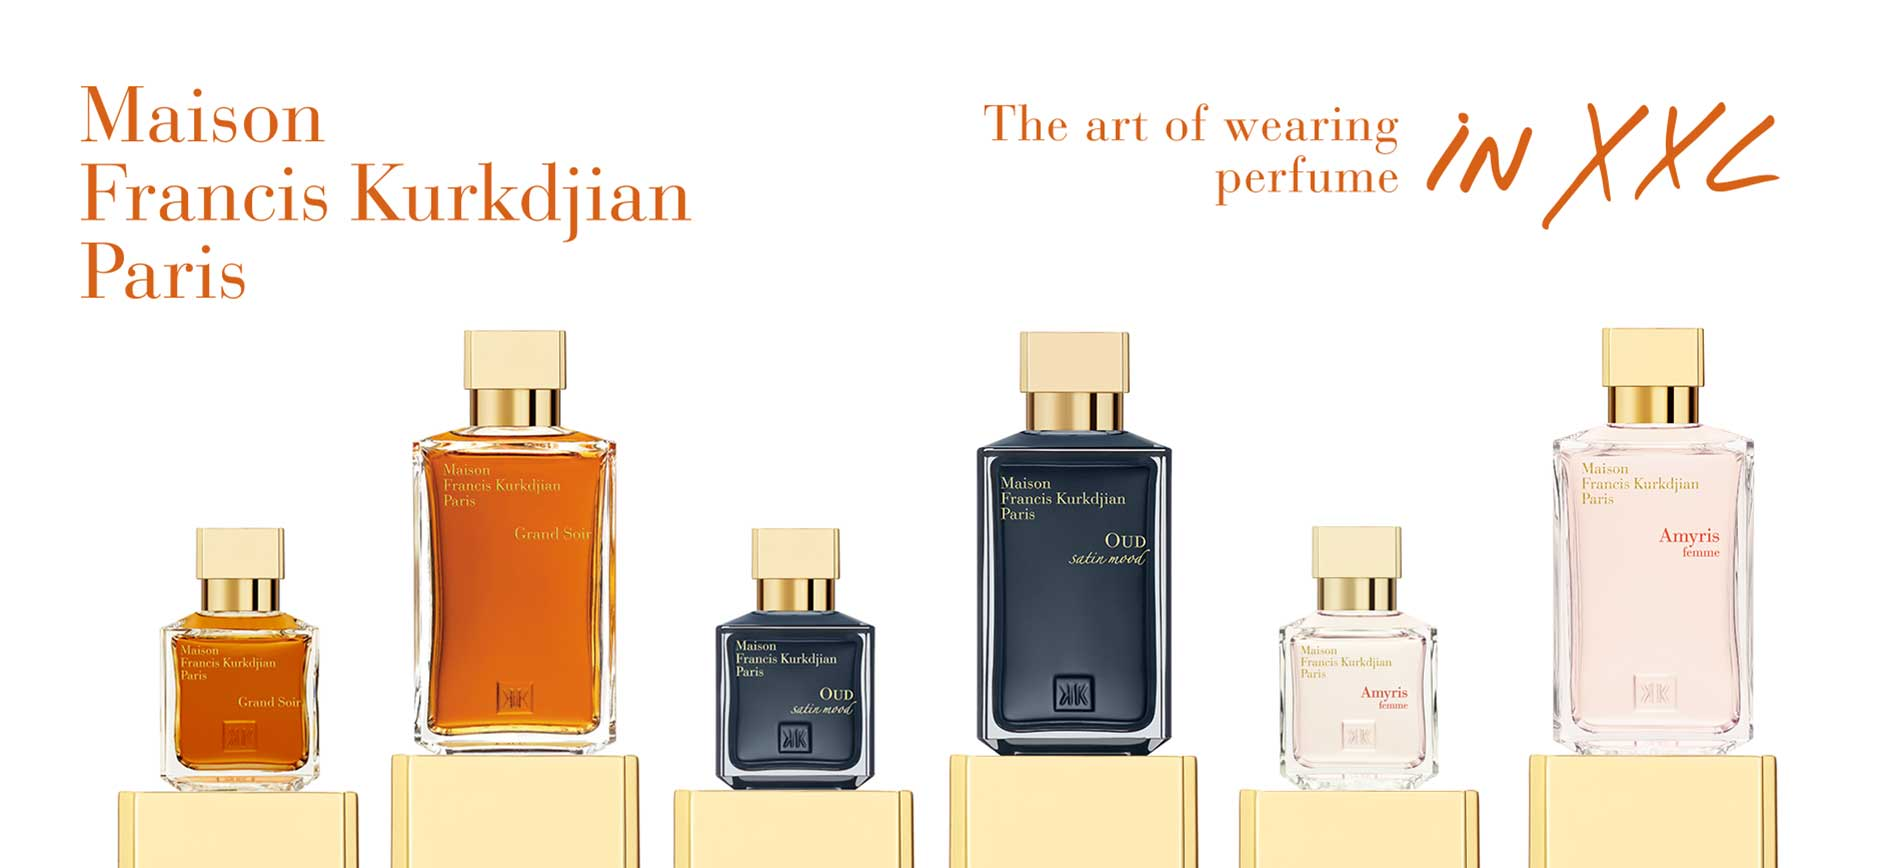 Maison Francis Kurkdjian Paris: The art of wearing perfume in XXL